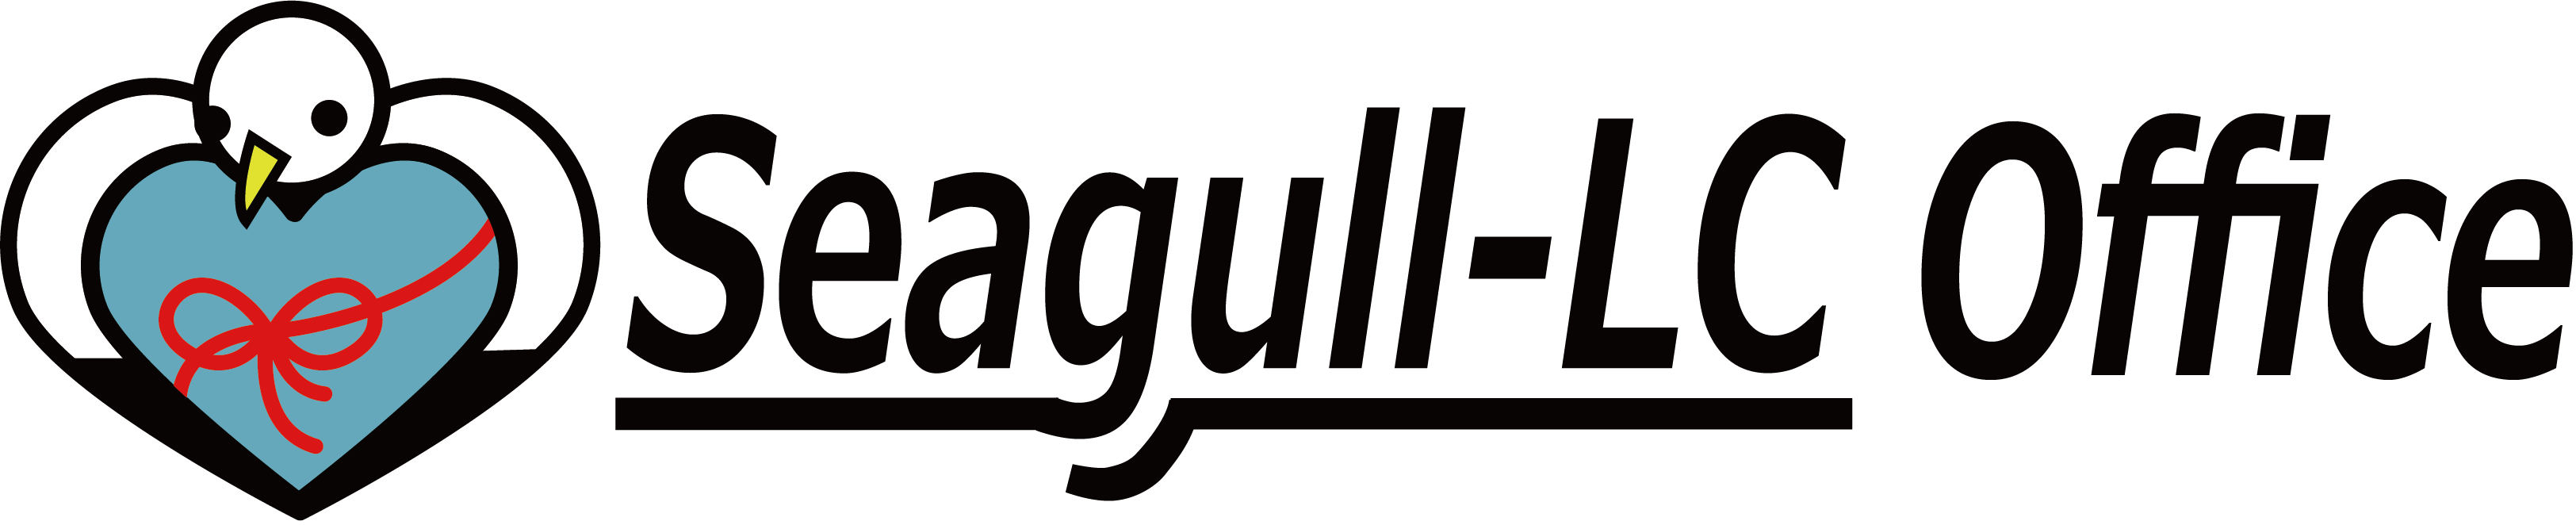 Seagull-LC Office Executive Schedule